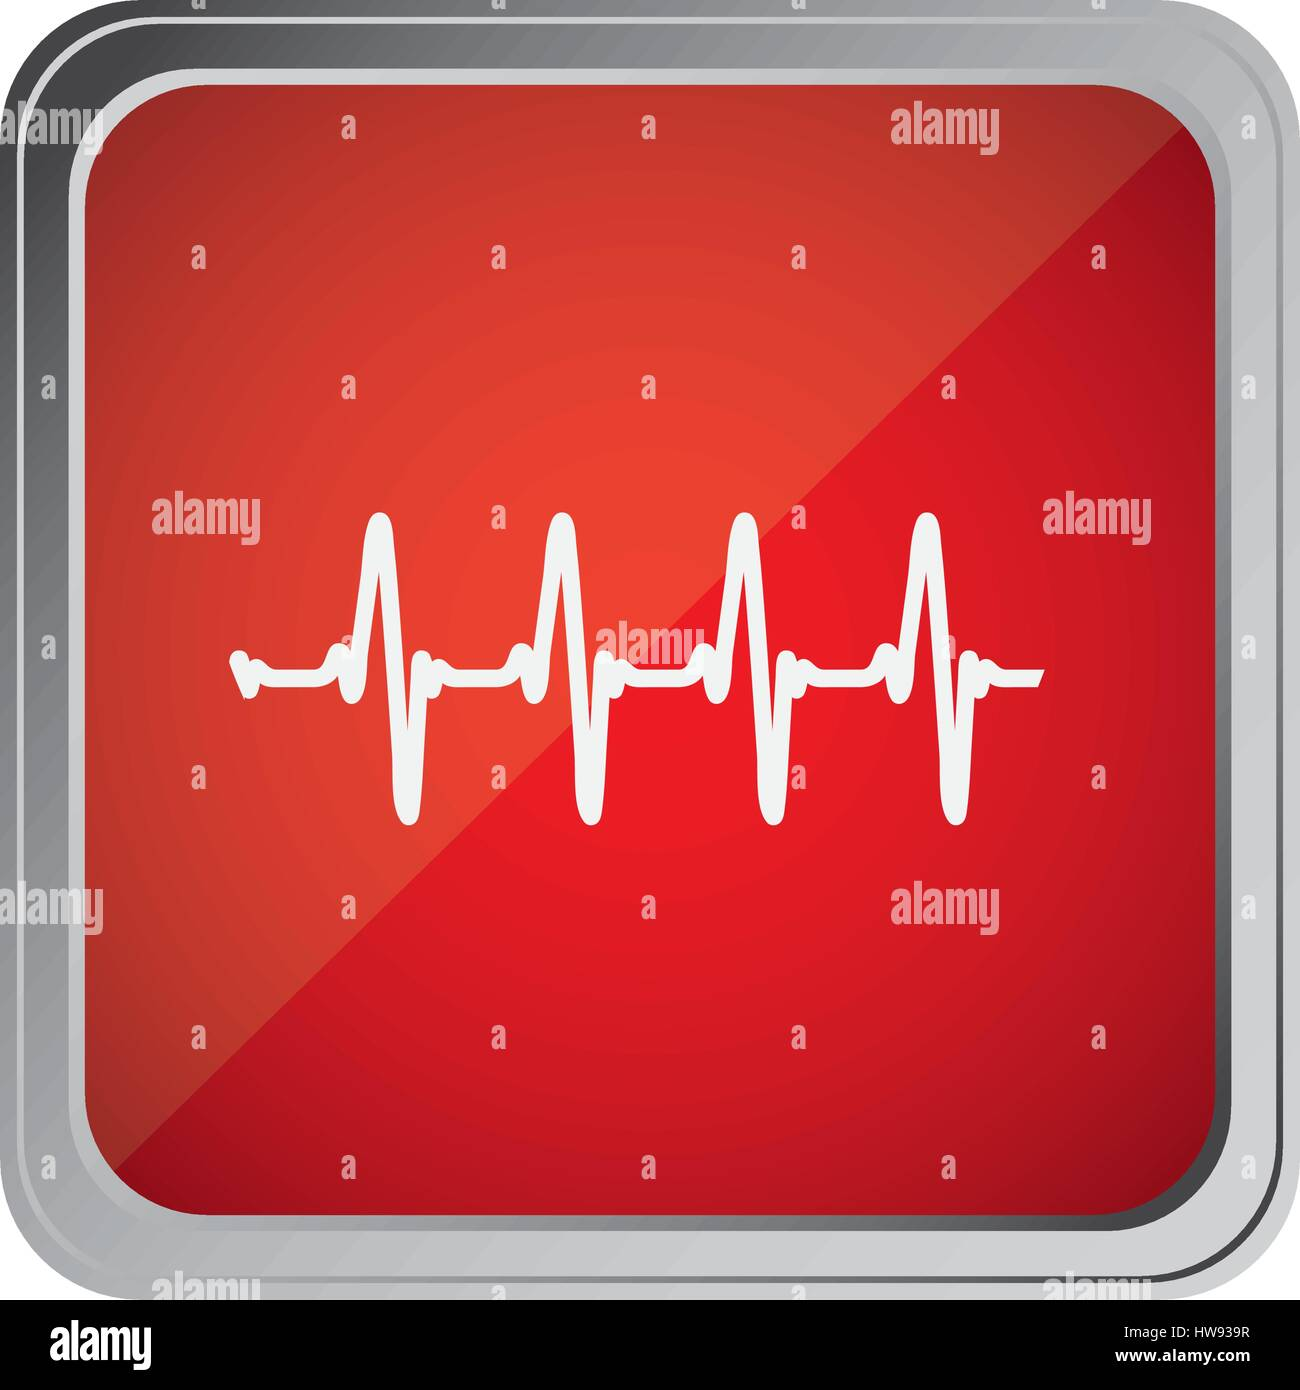 button with vital sign line with background red - Stock Image